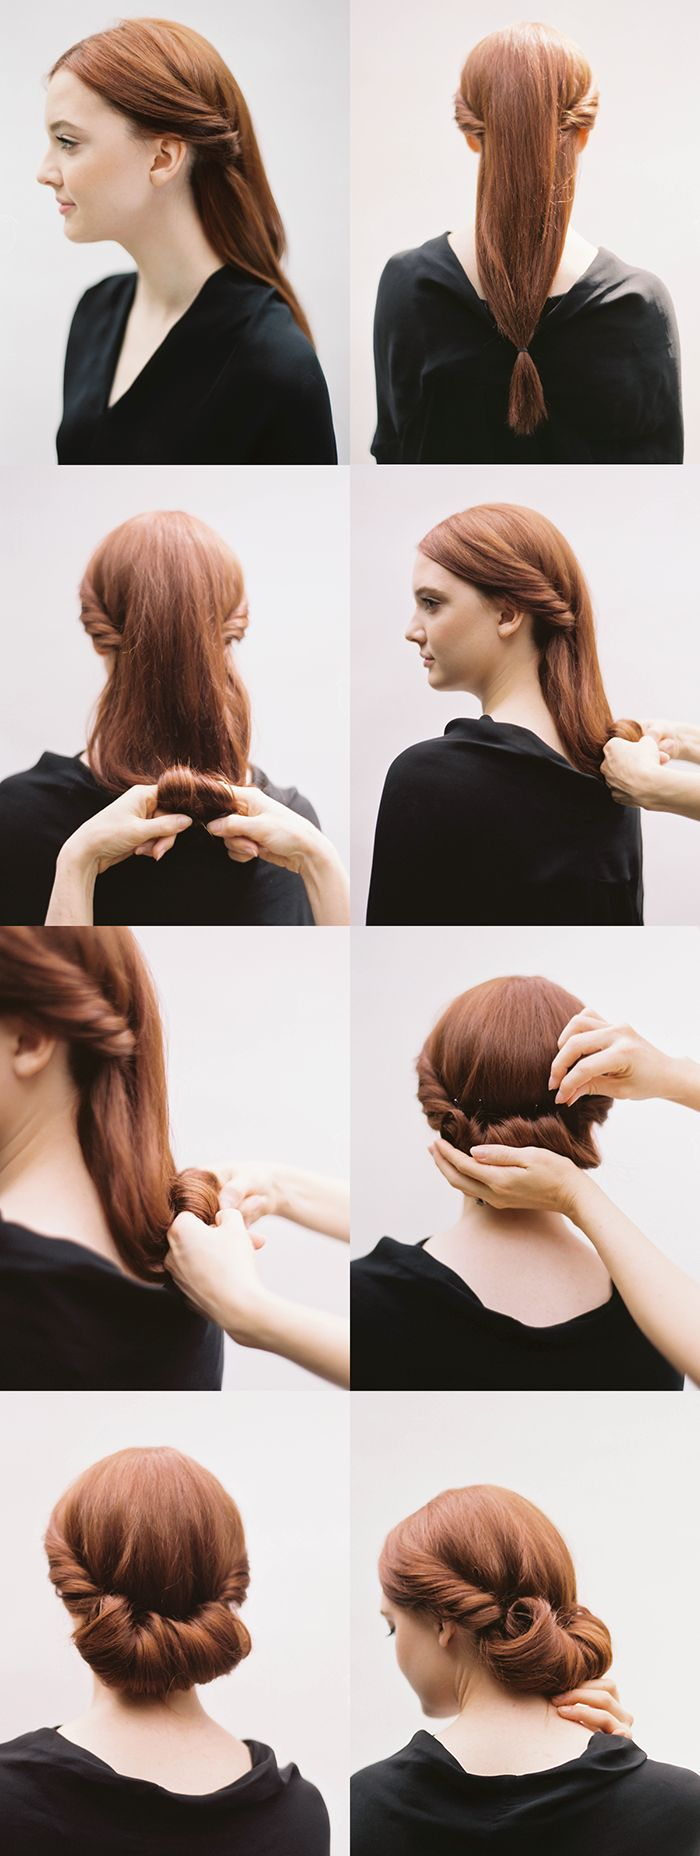 DIY Rolled Chignon. Try out different hairstyles before you set your heart on something.